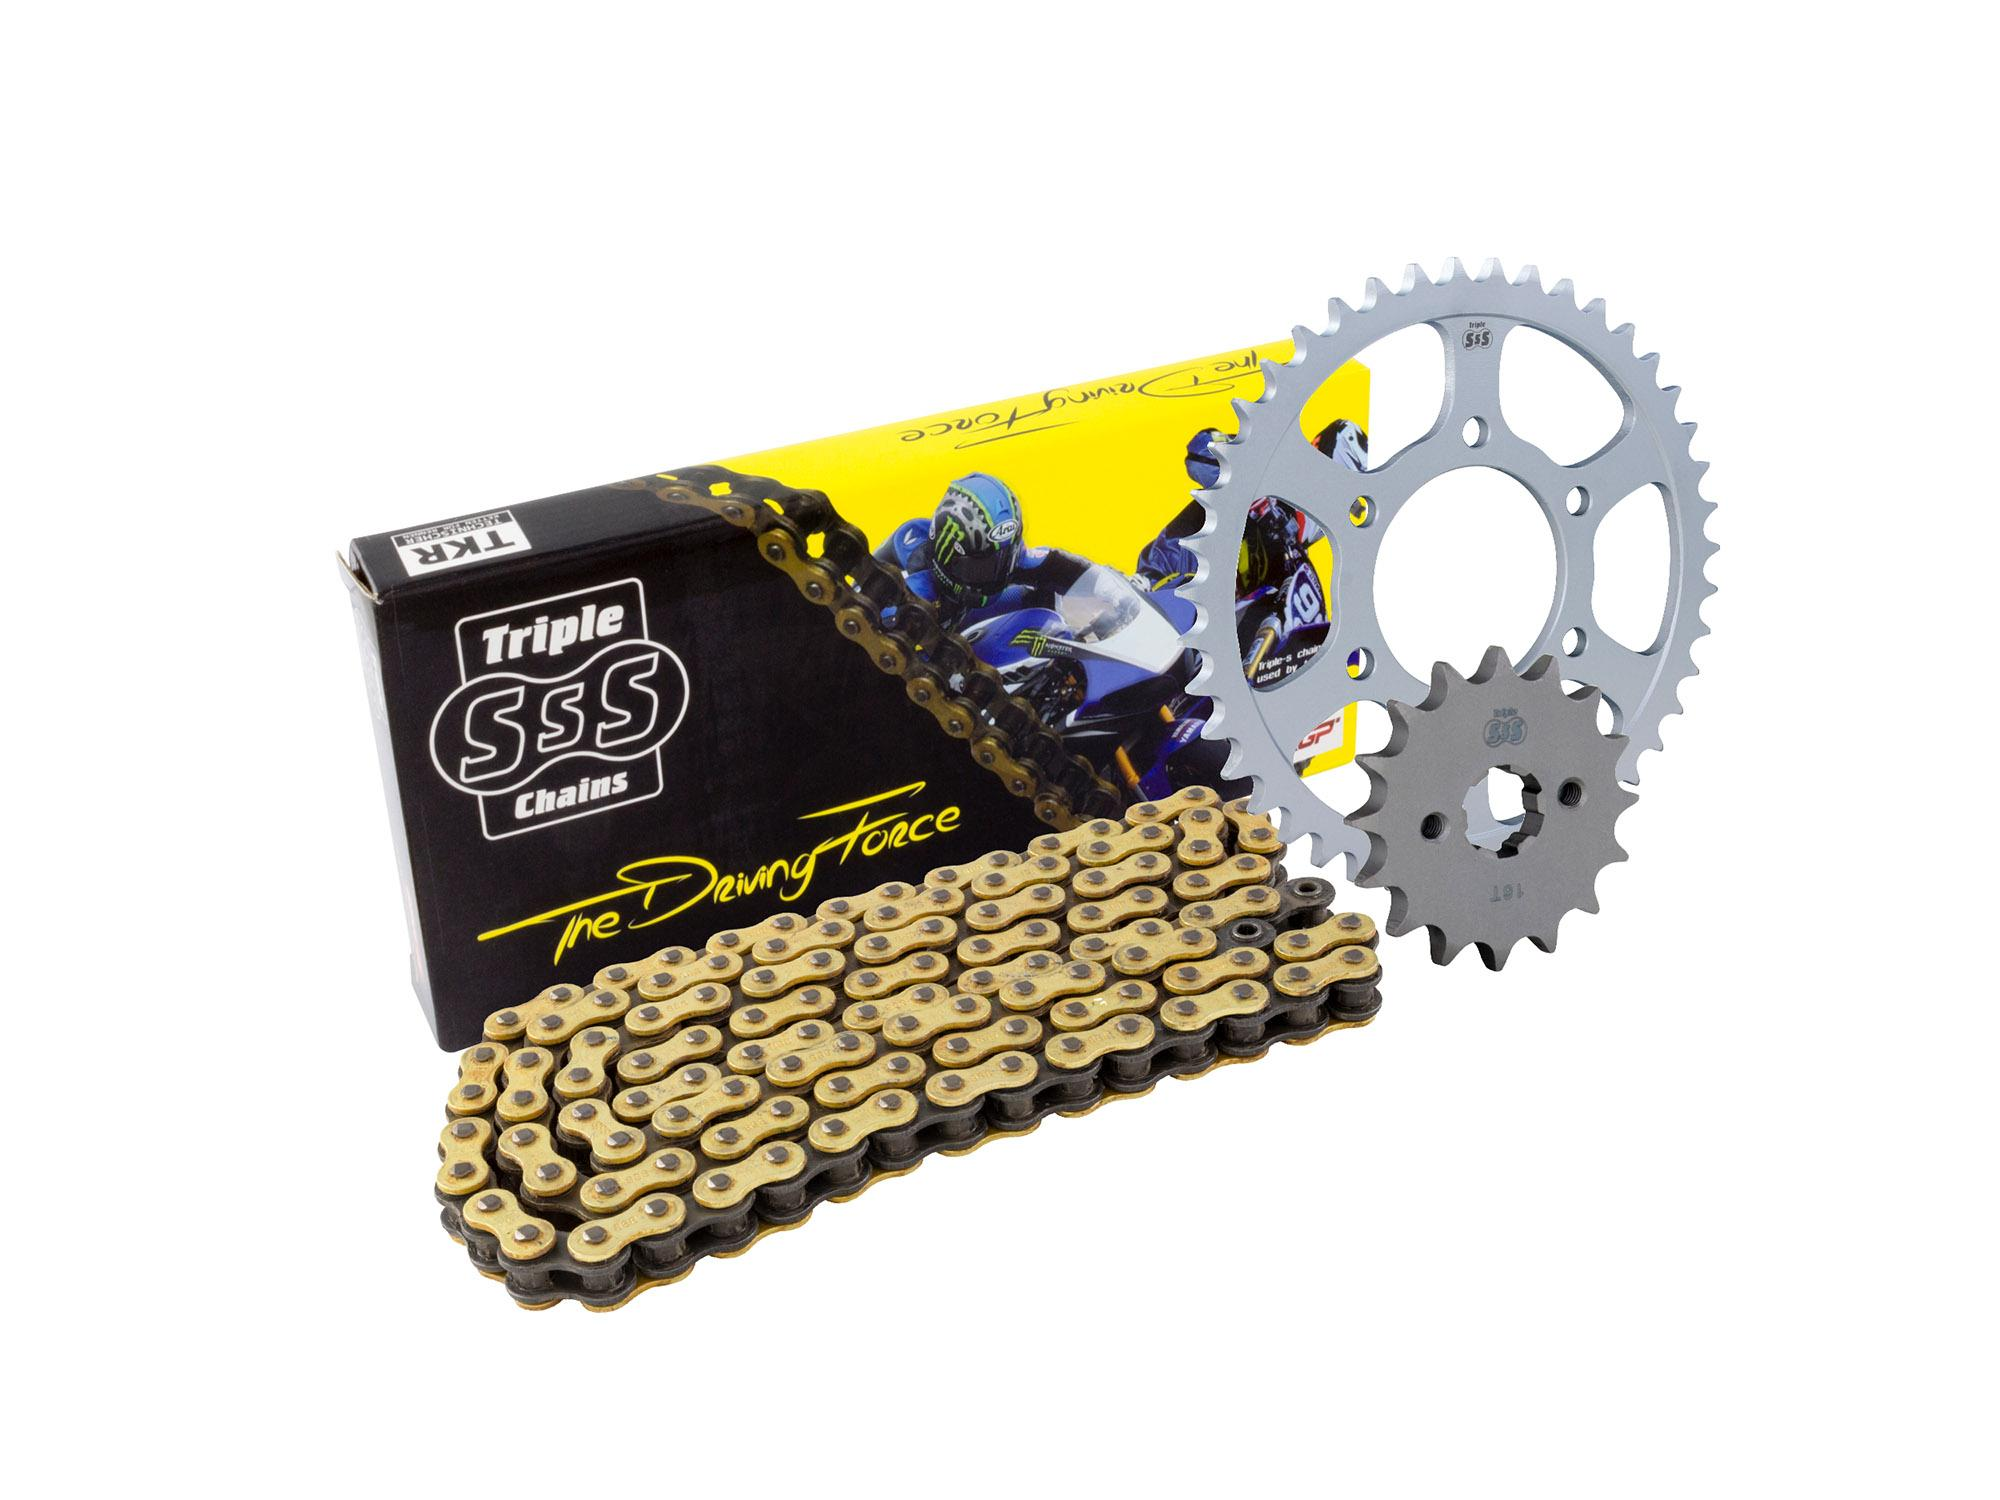 Kawasaki ZXR750 R L1-L3 93-95 Chain & Sprocket Kit: 16T Front, 44T Rear, HD O-Ring Gold Chain 530H 110 Link